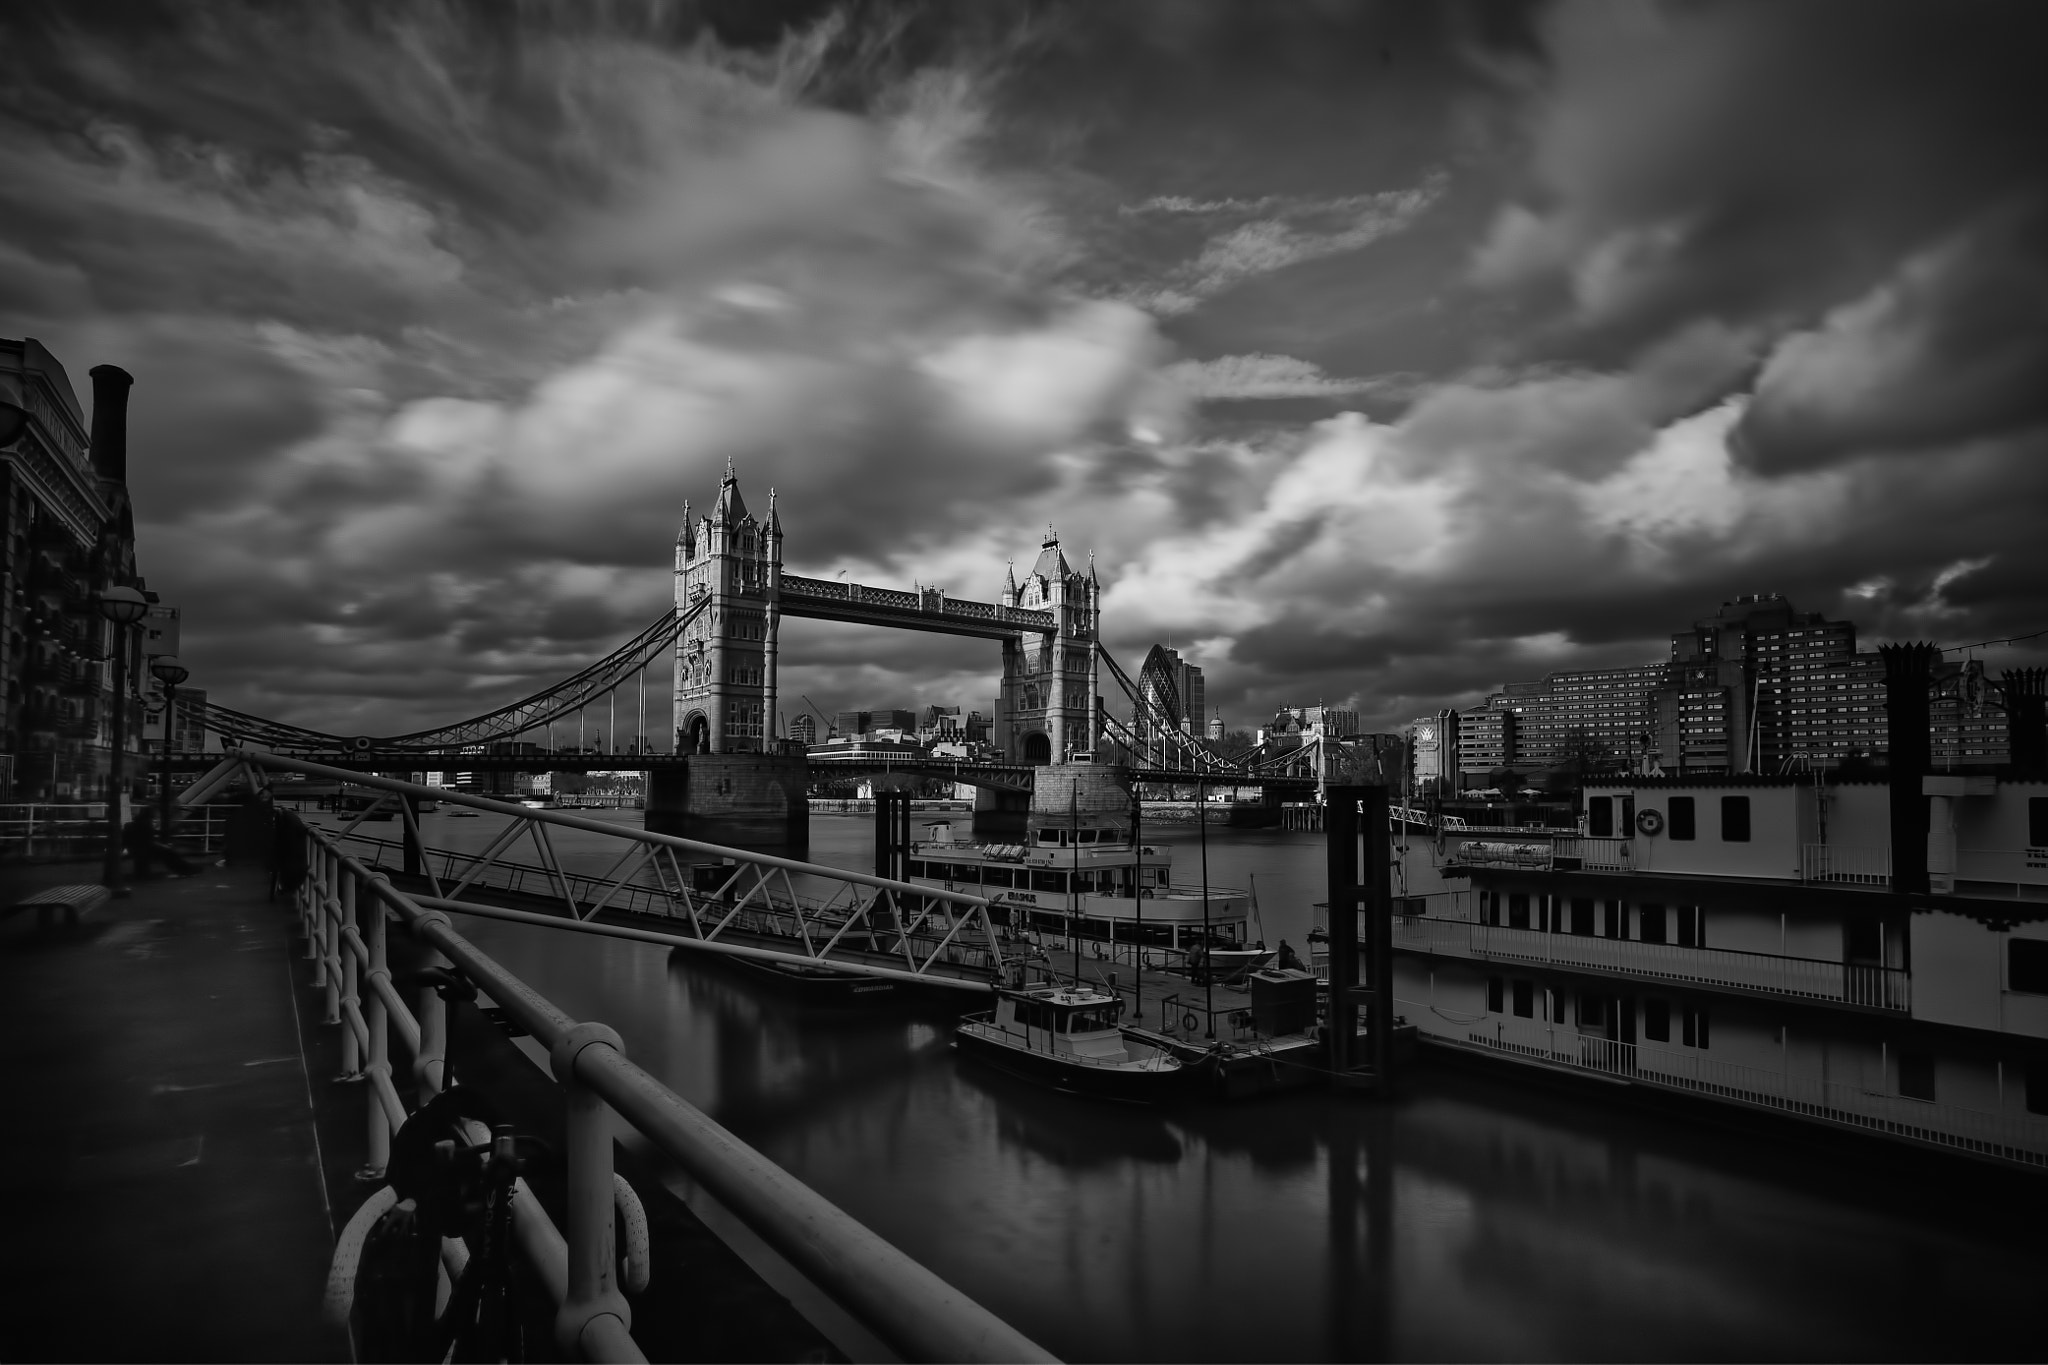 Photograph Tower Bridge by Dean Bedding on 500px